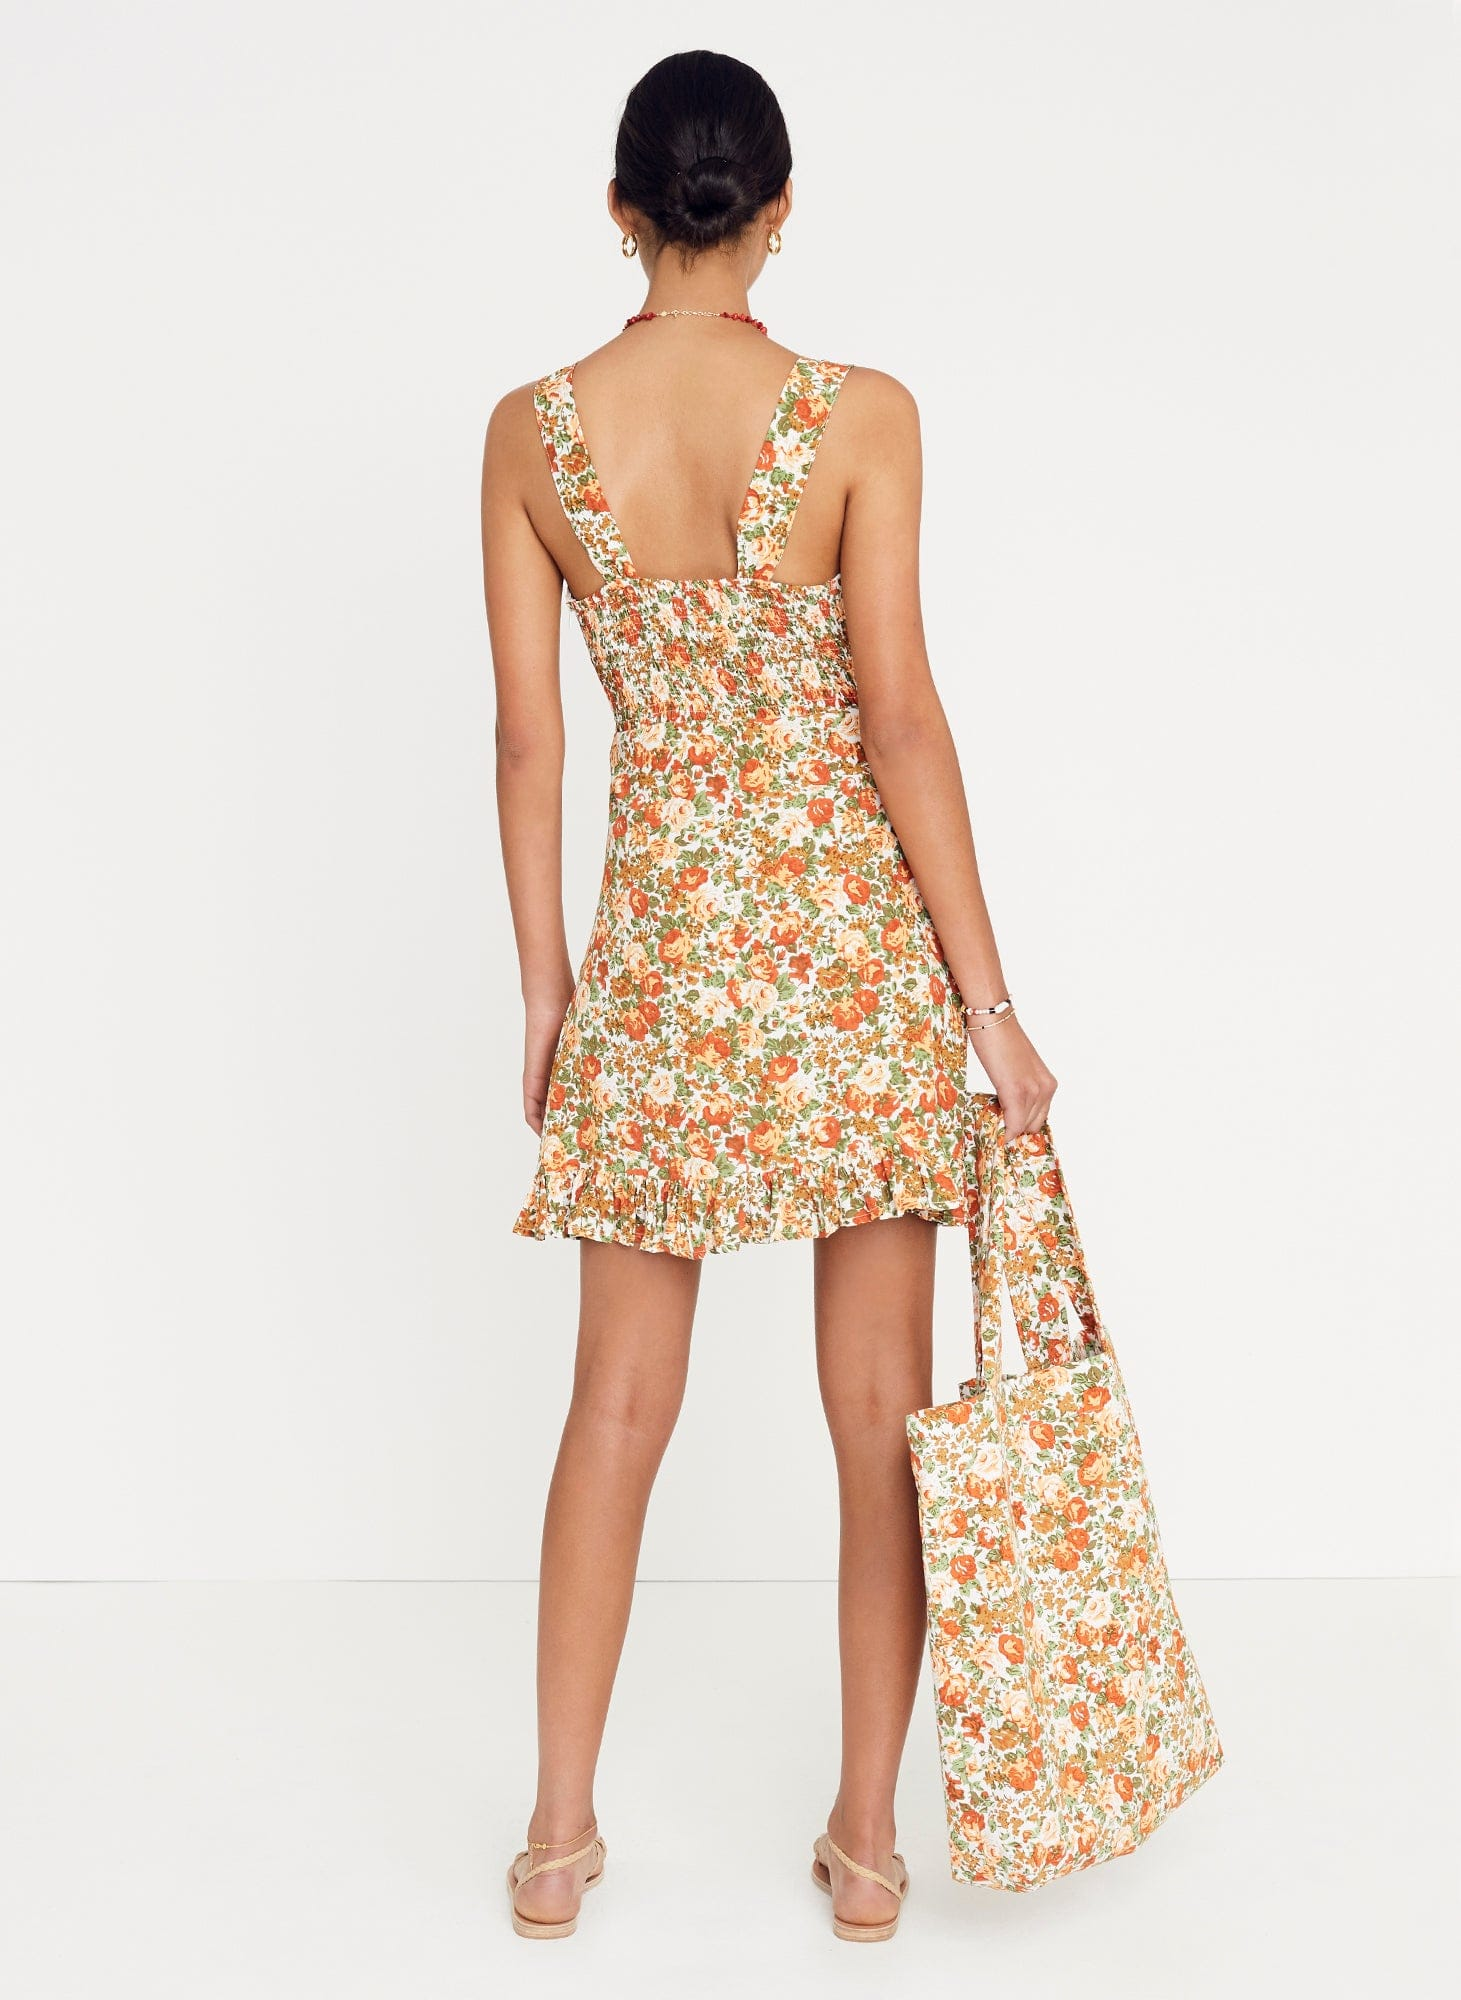 Le Rose Floral Print - Lou Lou Mini Dress